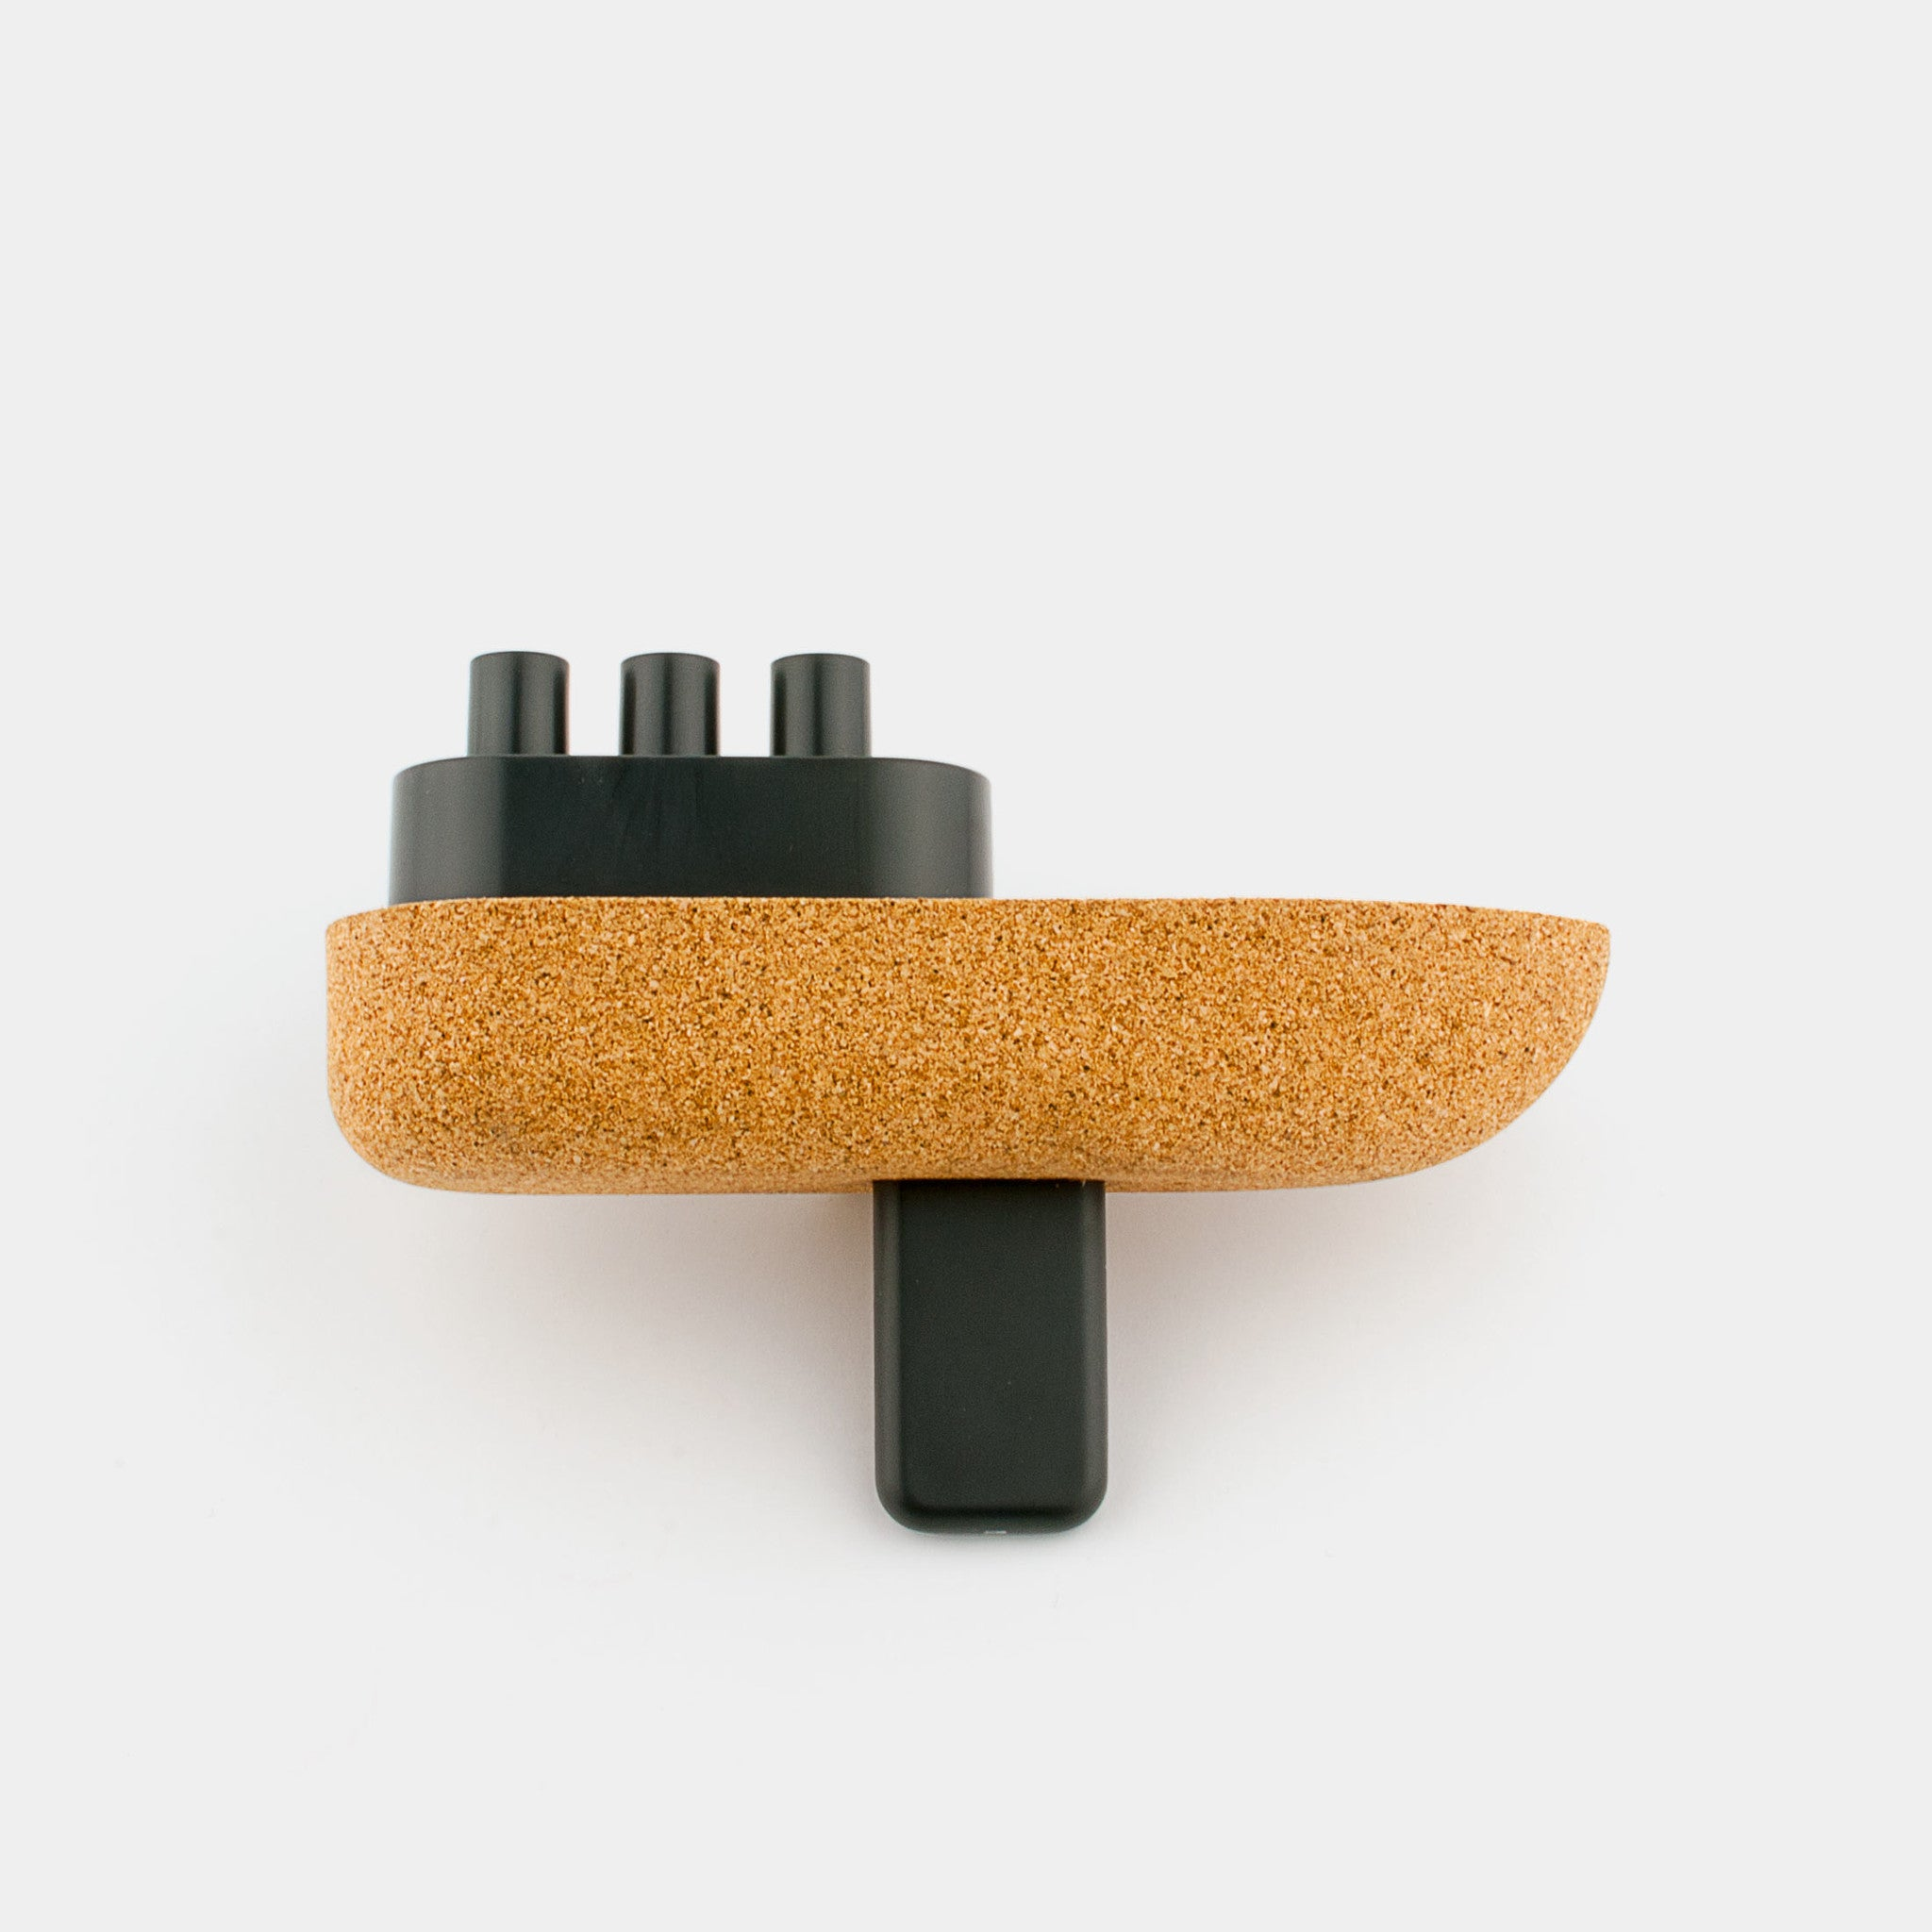 This cork Cruise Liner is a beautiful bath toy, designed in 2011 by the Swiss design studio Big Game, in collaboration with the Portuguese cork company Materia.